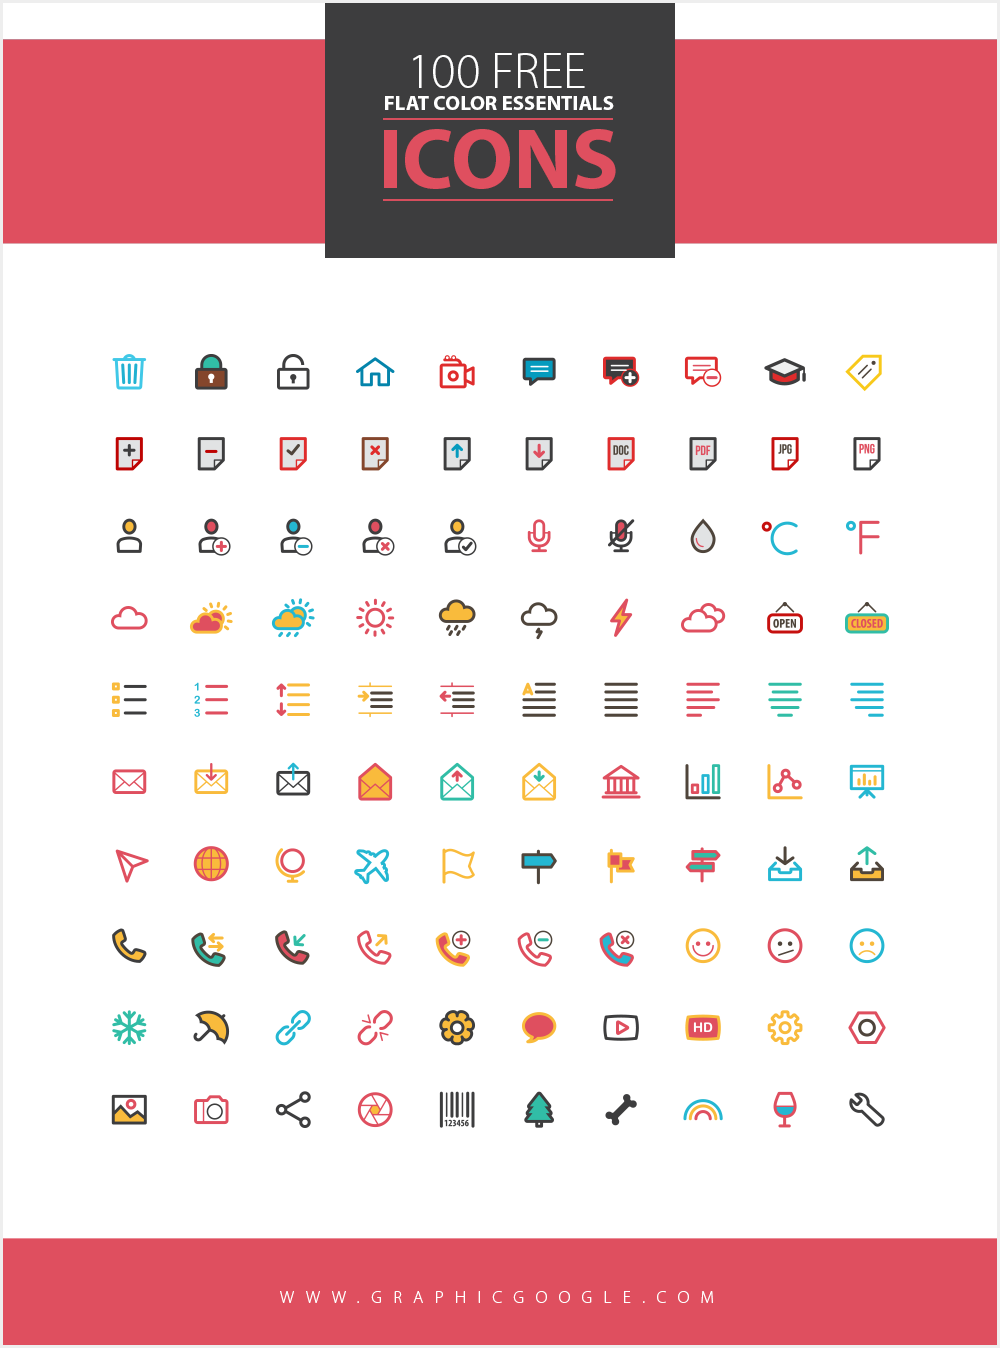 100-Free-Flat-Color-Essentials-Icons-Ai-Vector-File